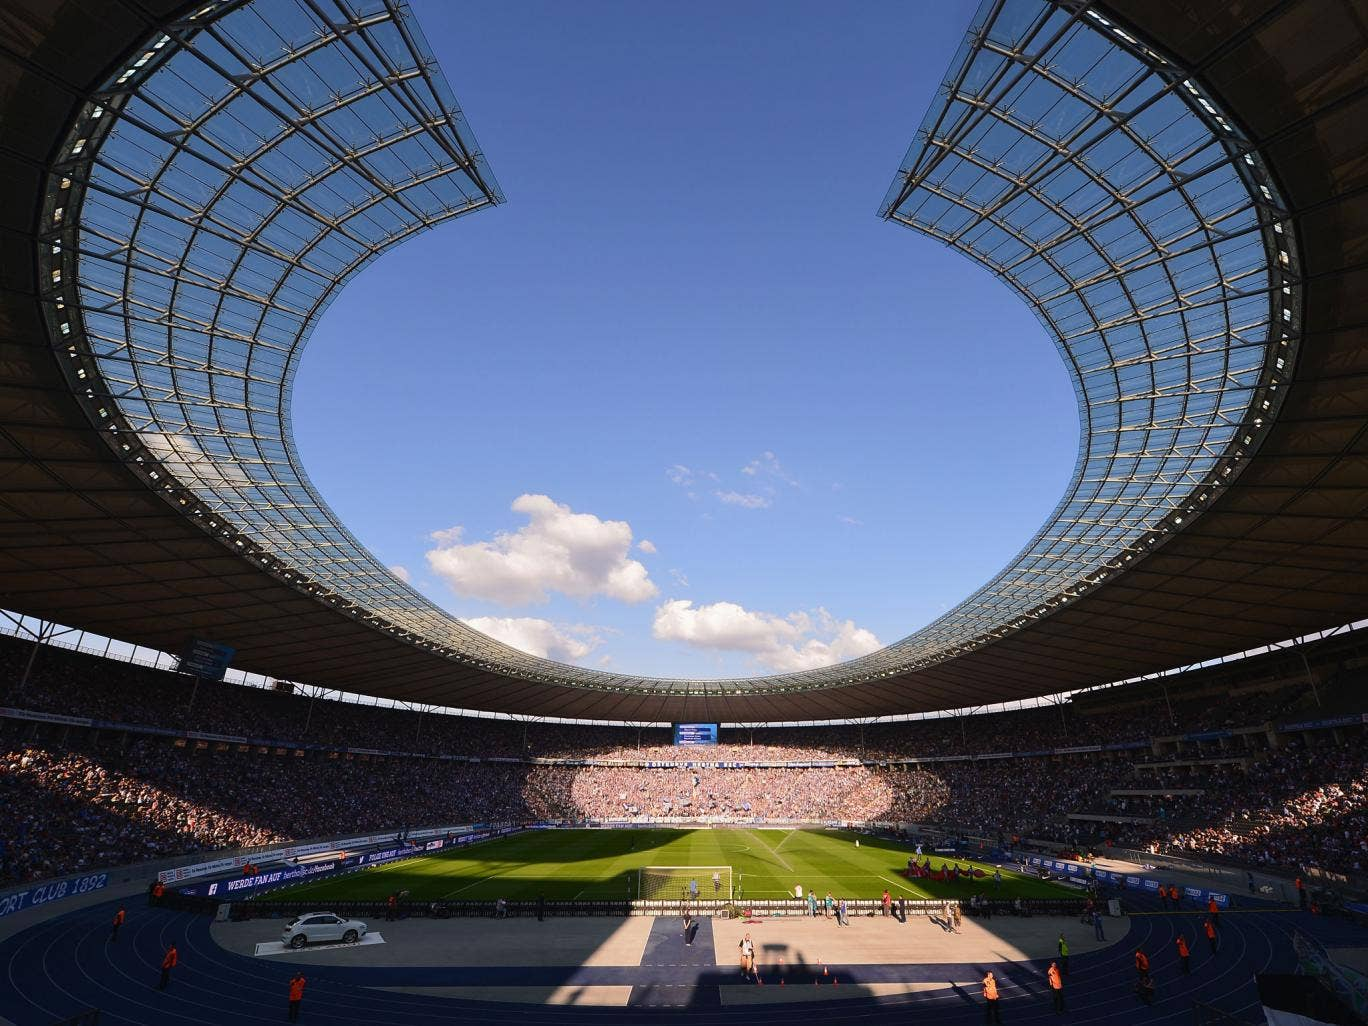 A general view of the Olympia stadium during the Bundesliga match between Hertha BSC and Hamburger SV